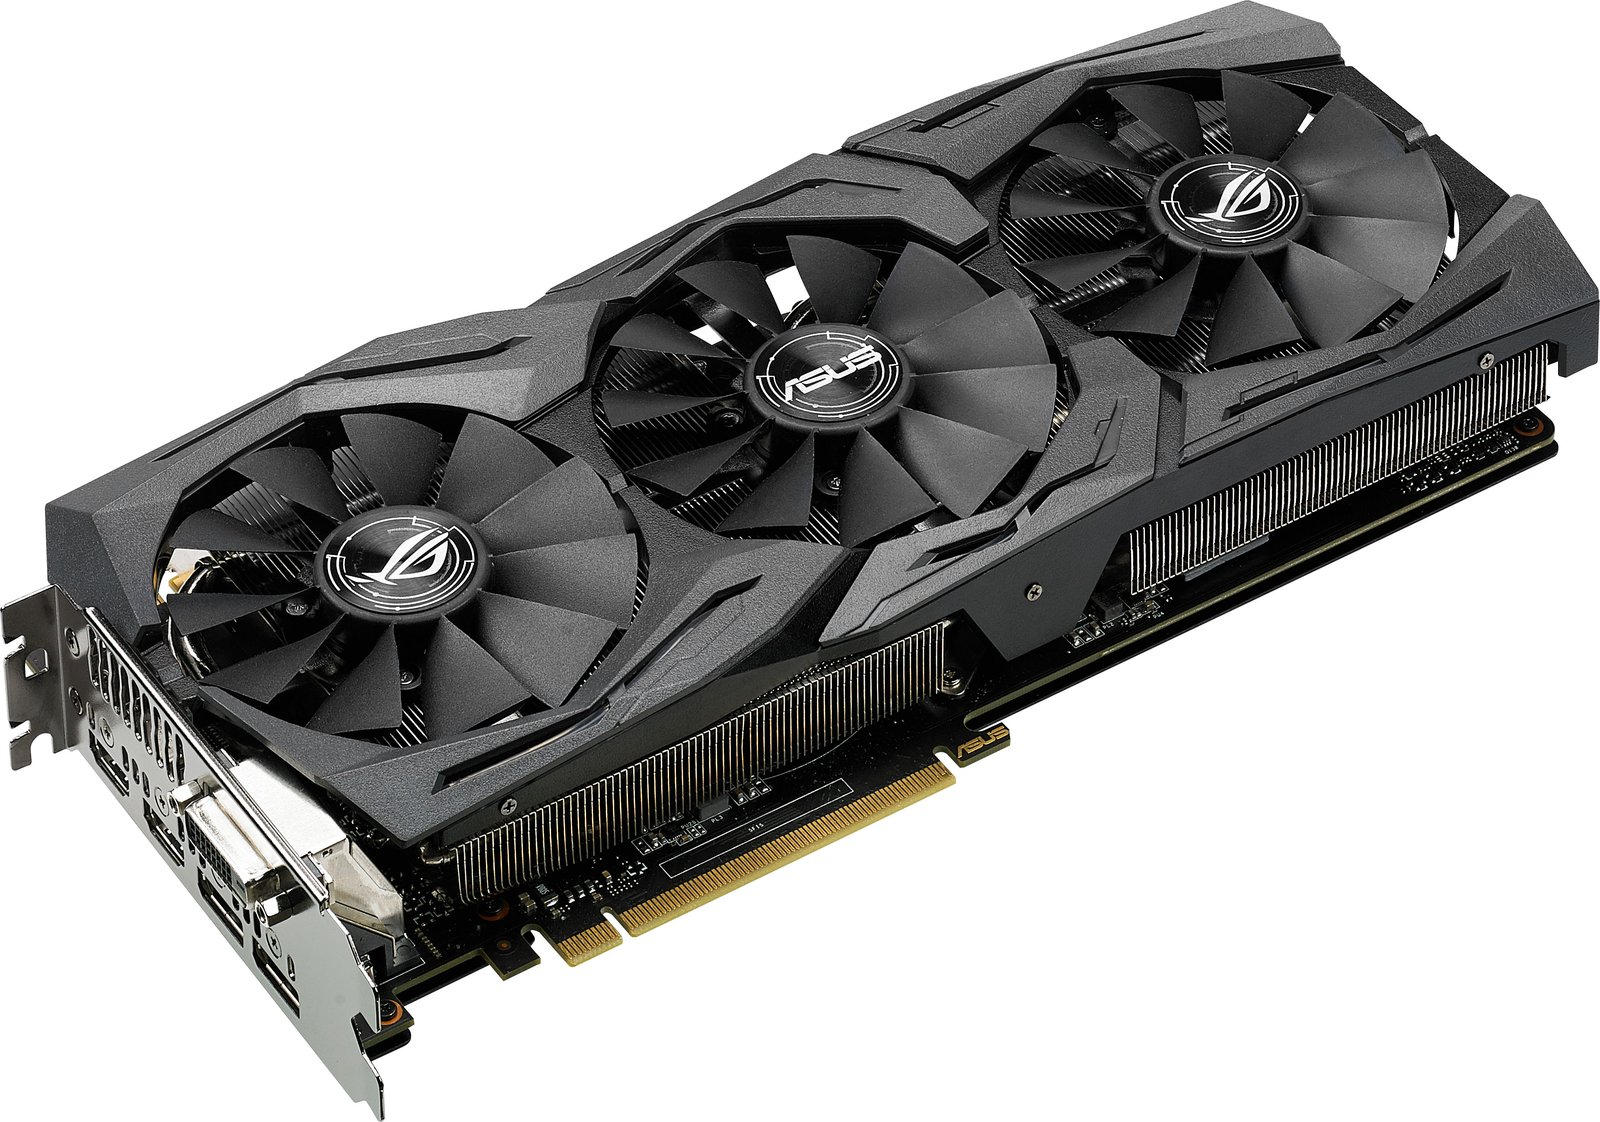 NVIDIA GeForce GTX 1060 6GB Graphics Card Review – Techgage